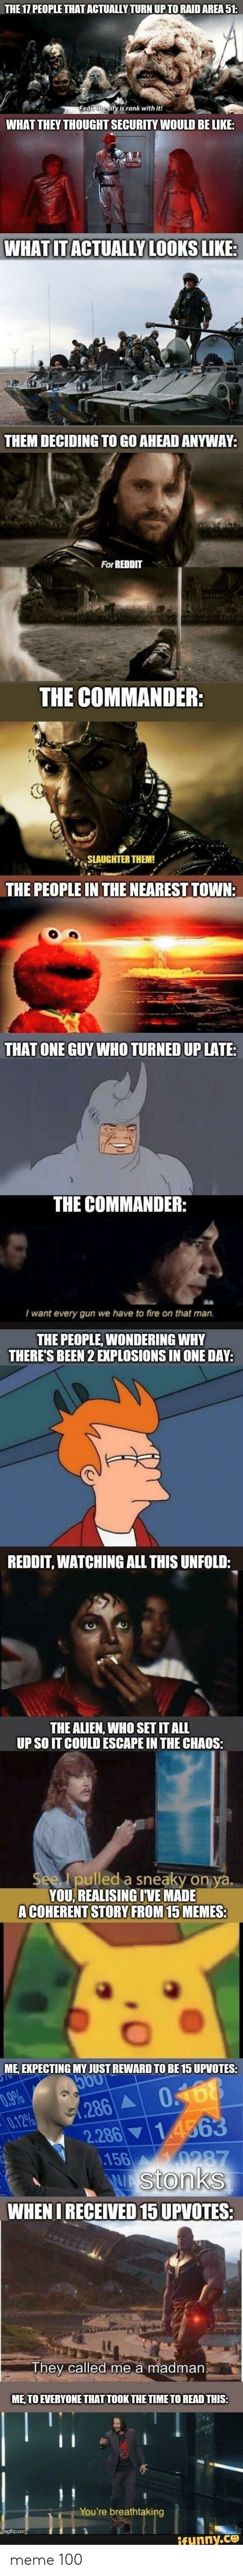 the commander: THE 17 PEOPLE THAT ACTUALLY TURN UP TO RAID AREA 51:  Fear the city is rank with it!  WHAT THEY THOUGHT SECURITY WOULD BE LIKE:  WHAT IT ACTUALLY LOOKS LIKE:  THEM DECIDING TO GO AHEAD ANYWAY:  For REDDIT  THE COMMANDER:  SLAUGHTER THEM!  THE PEOPLE IN THE NEAREST TOWN:  THAT ONE GUY WHO TURNED UP LATE:  THE COMMANDER:  I want every gun we have to fire on that man.  THE PEOPLE, WONDERING WHY  THERE'S BEEN 2 EXPLOSIONS IN ONE DAY:  REDDIT, WATCHING ALL THIS UNFOLD:  THE ALIEN, WHO SET IT ALL  UP SO IT COULD ESCAPE IN THE CHAOS:  See, I pulled a sneaky on ya.  YOU, REALISING IVE MADE  A COHERENT STORY FROM 15 MEMES:  ME, EXPECTING MY JUST REWARD TO BE 15 UPVOTES:  5O0  0.9%  0.12%  0.168  1.286 A  2.286 14563  156  0287  Wstonks  WHEN I RECEIVED 15 UPVOTES:  They called me a madman.  ME, TO EVERYONE THAT TOOK THE TIME TO READ THIS:  You're breathtaking  umgflip.com  ifunny.co meme 100